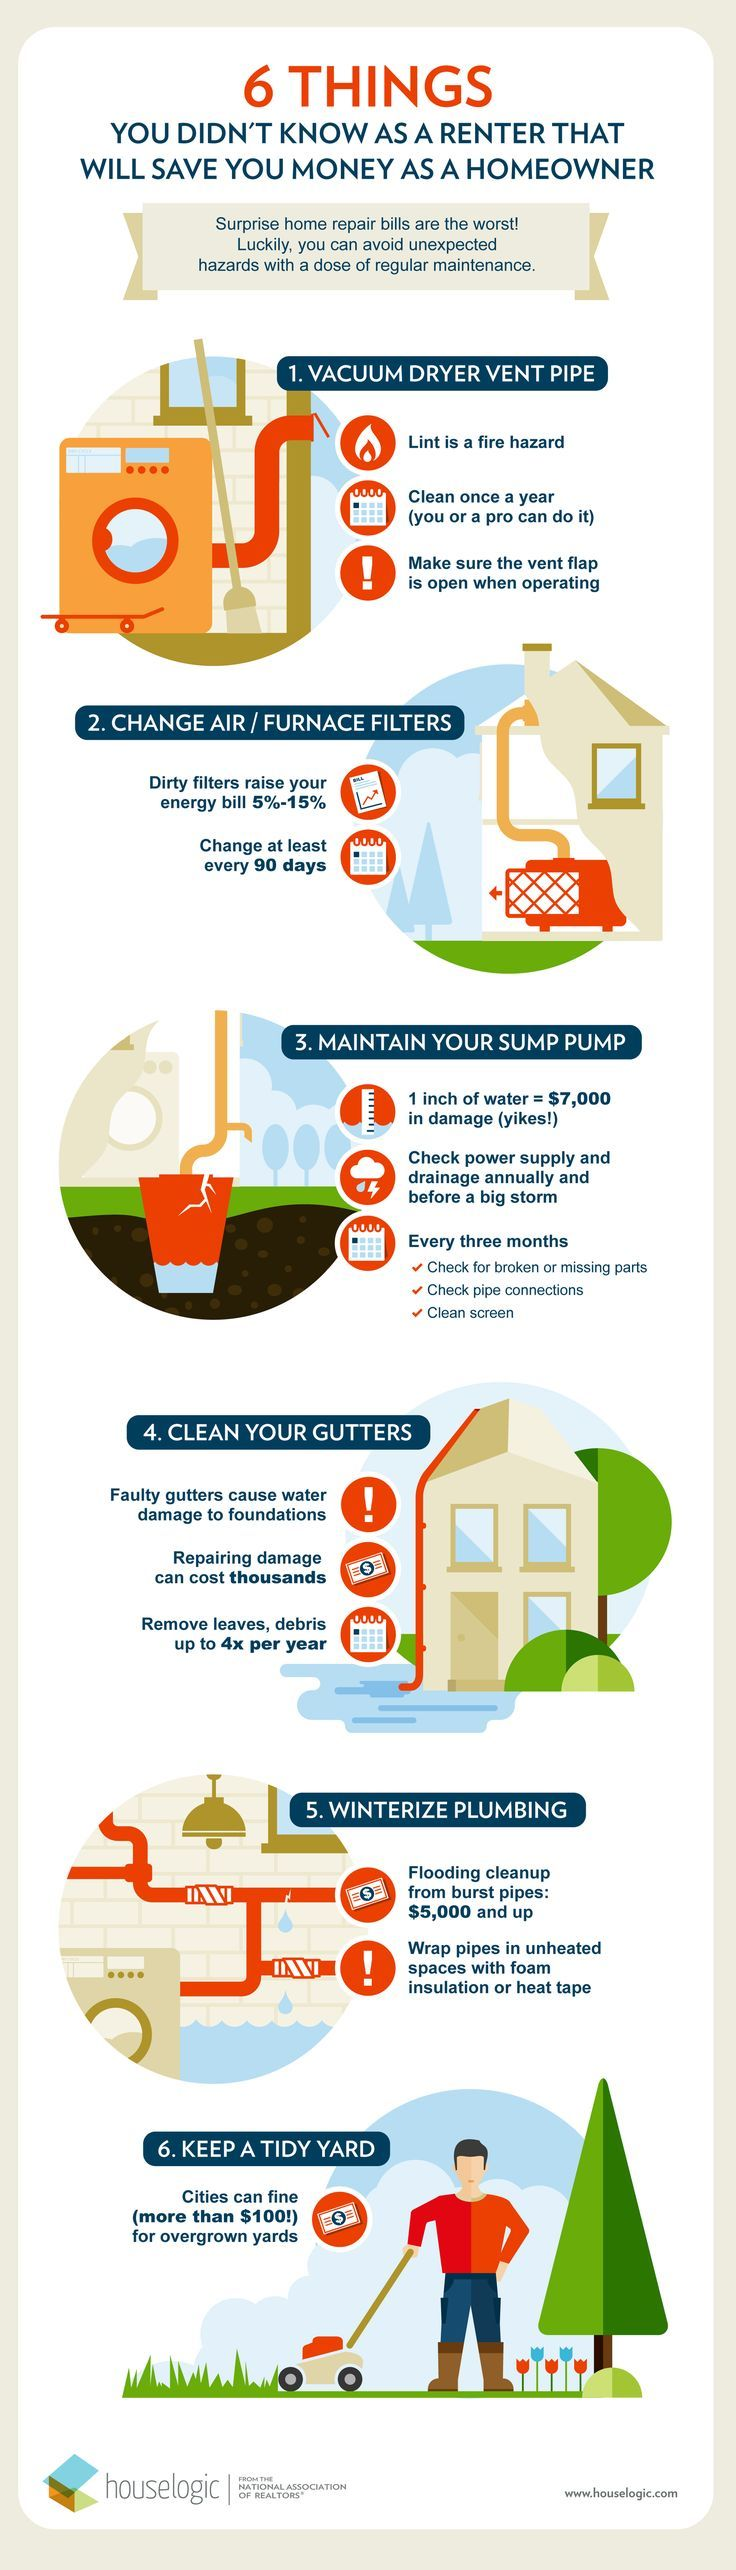 Buying your first home? These 6 money-saving tips will help you avoid preventable home maintenance problems. https://www.houselogic.com/buy/moving-in/tips-for-new-homeowners?cid=eo_sm_pin_mxm-social#utm_sguid=162535,6222b845-54bf-fd3c-e84c-b84182670d7d